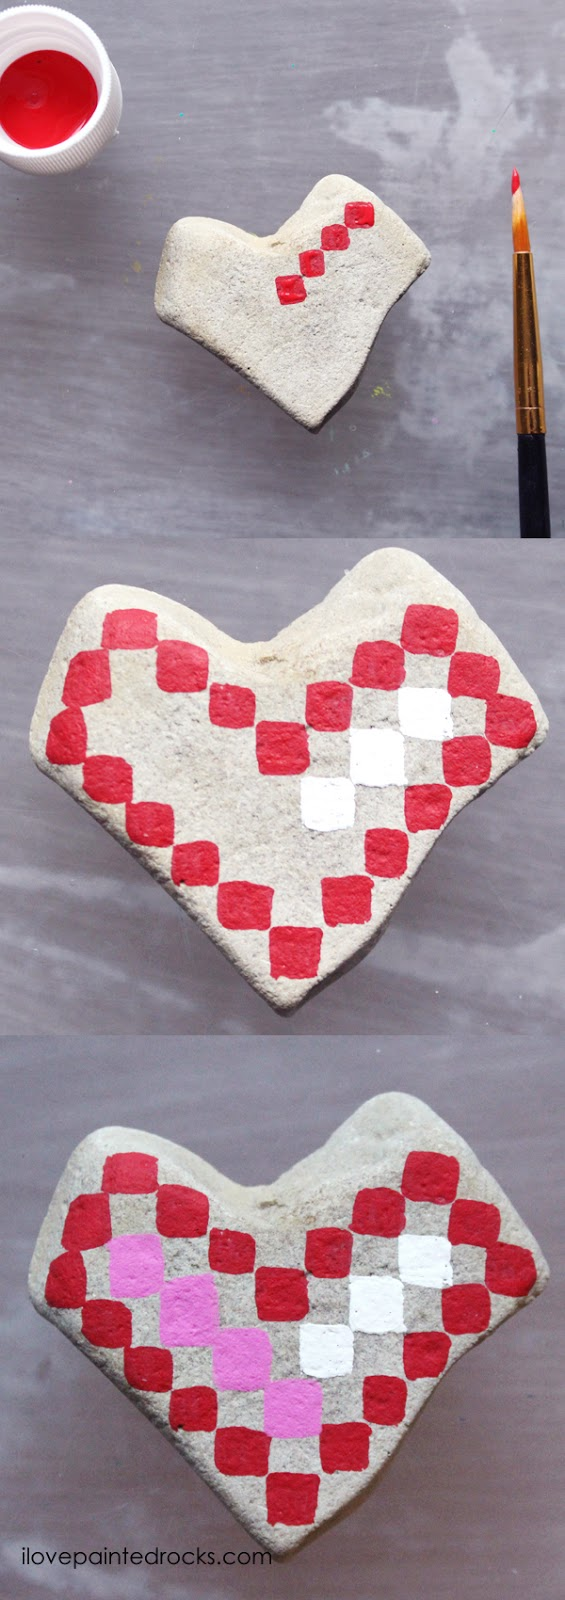 11 Ways to Paint Heart Rocks for Valentines Day - I Love